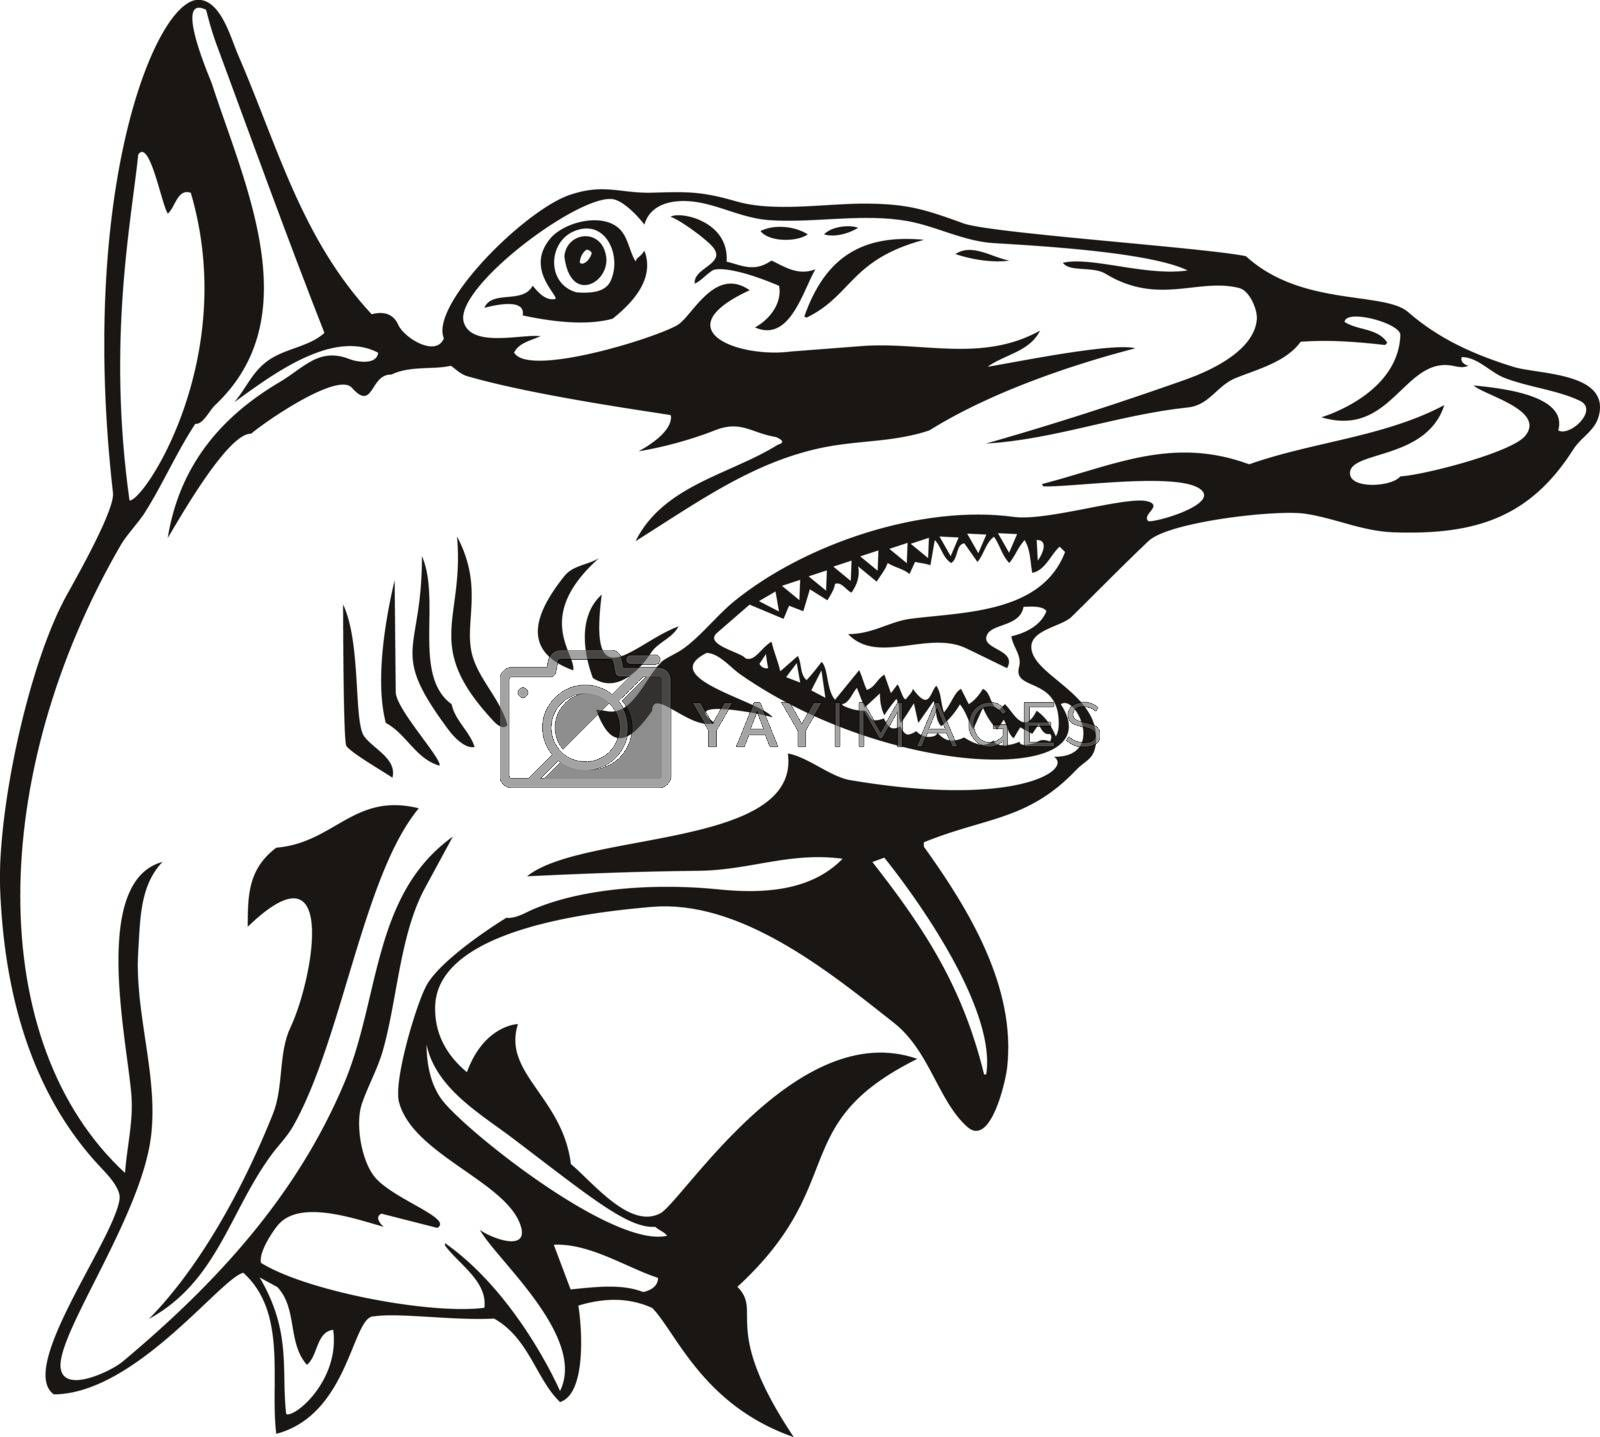 Retro woodcut style illustration of a scalloped hammerhead Sphyrna lewini, a species of hammerhead shark, and part of the family Sphyrnidaeon viewed from front isolated background in black and white.